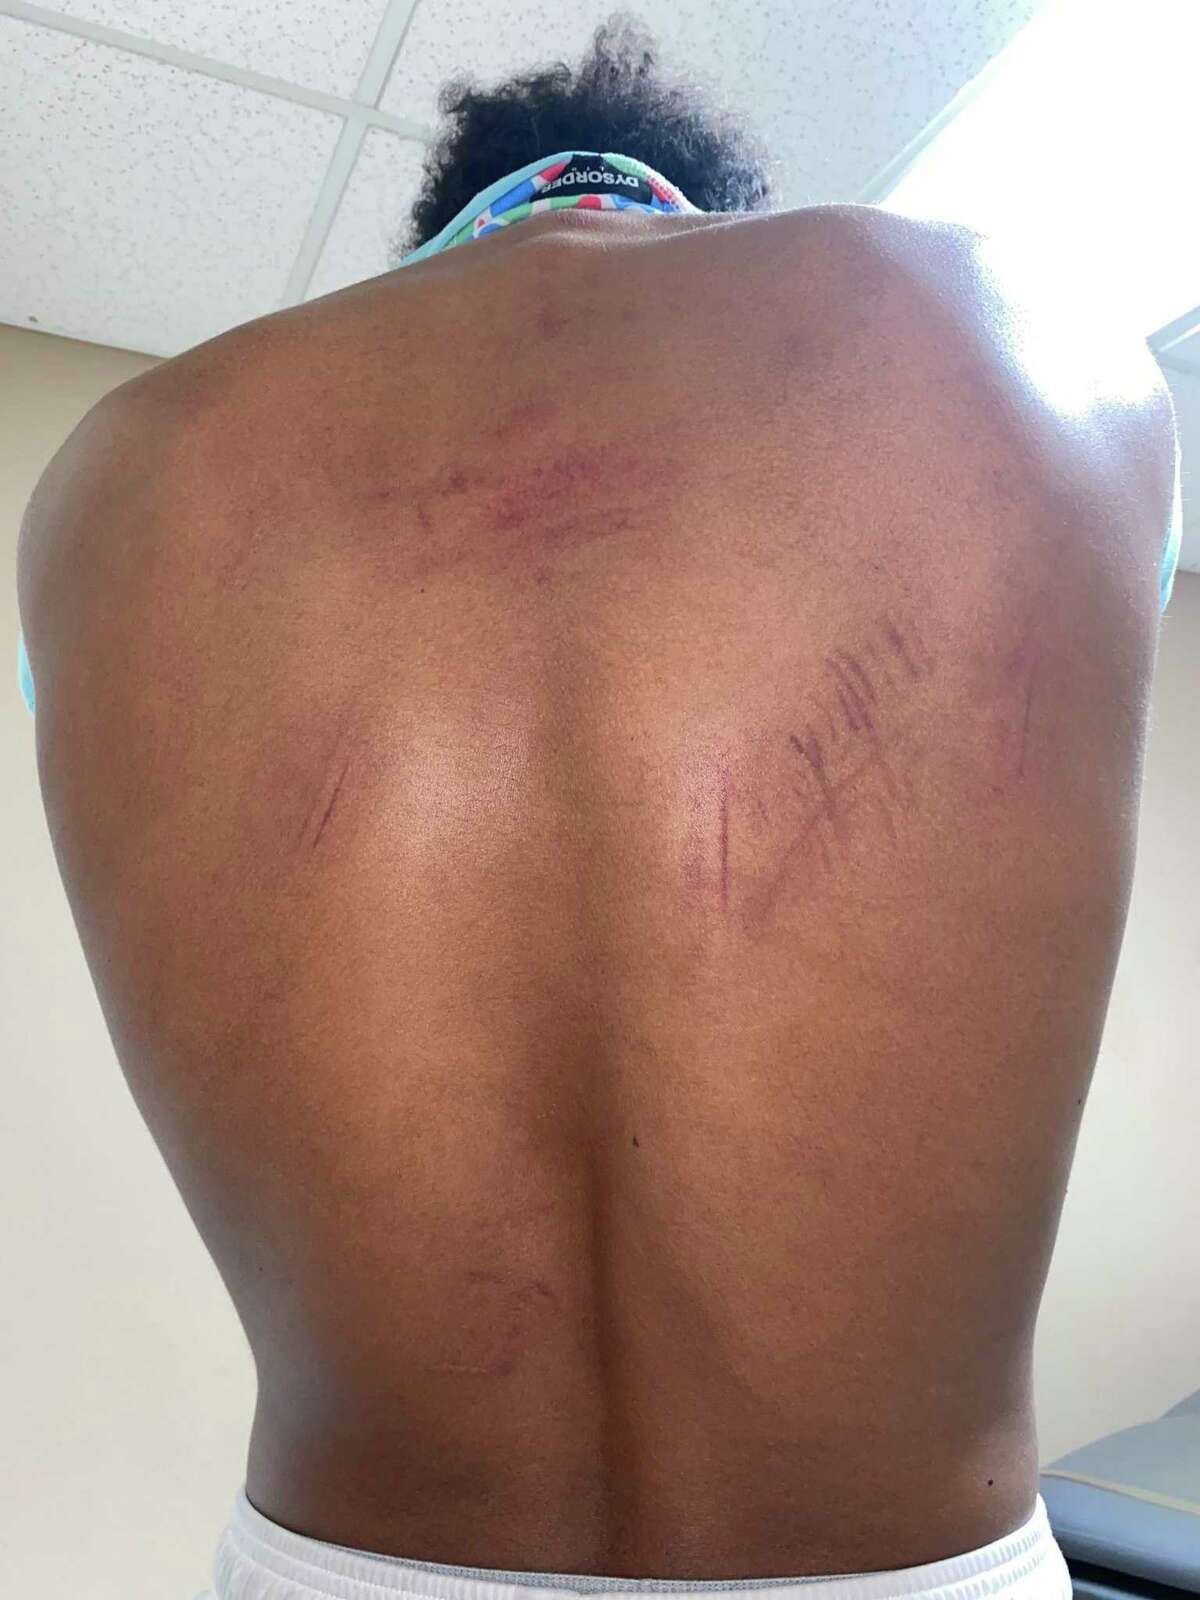 Devin Carter with bruises on his back after four Stockton police officers allegedly beat him during a traffic stop.